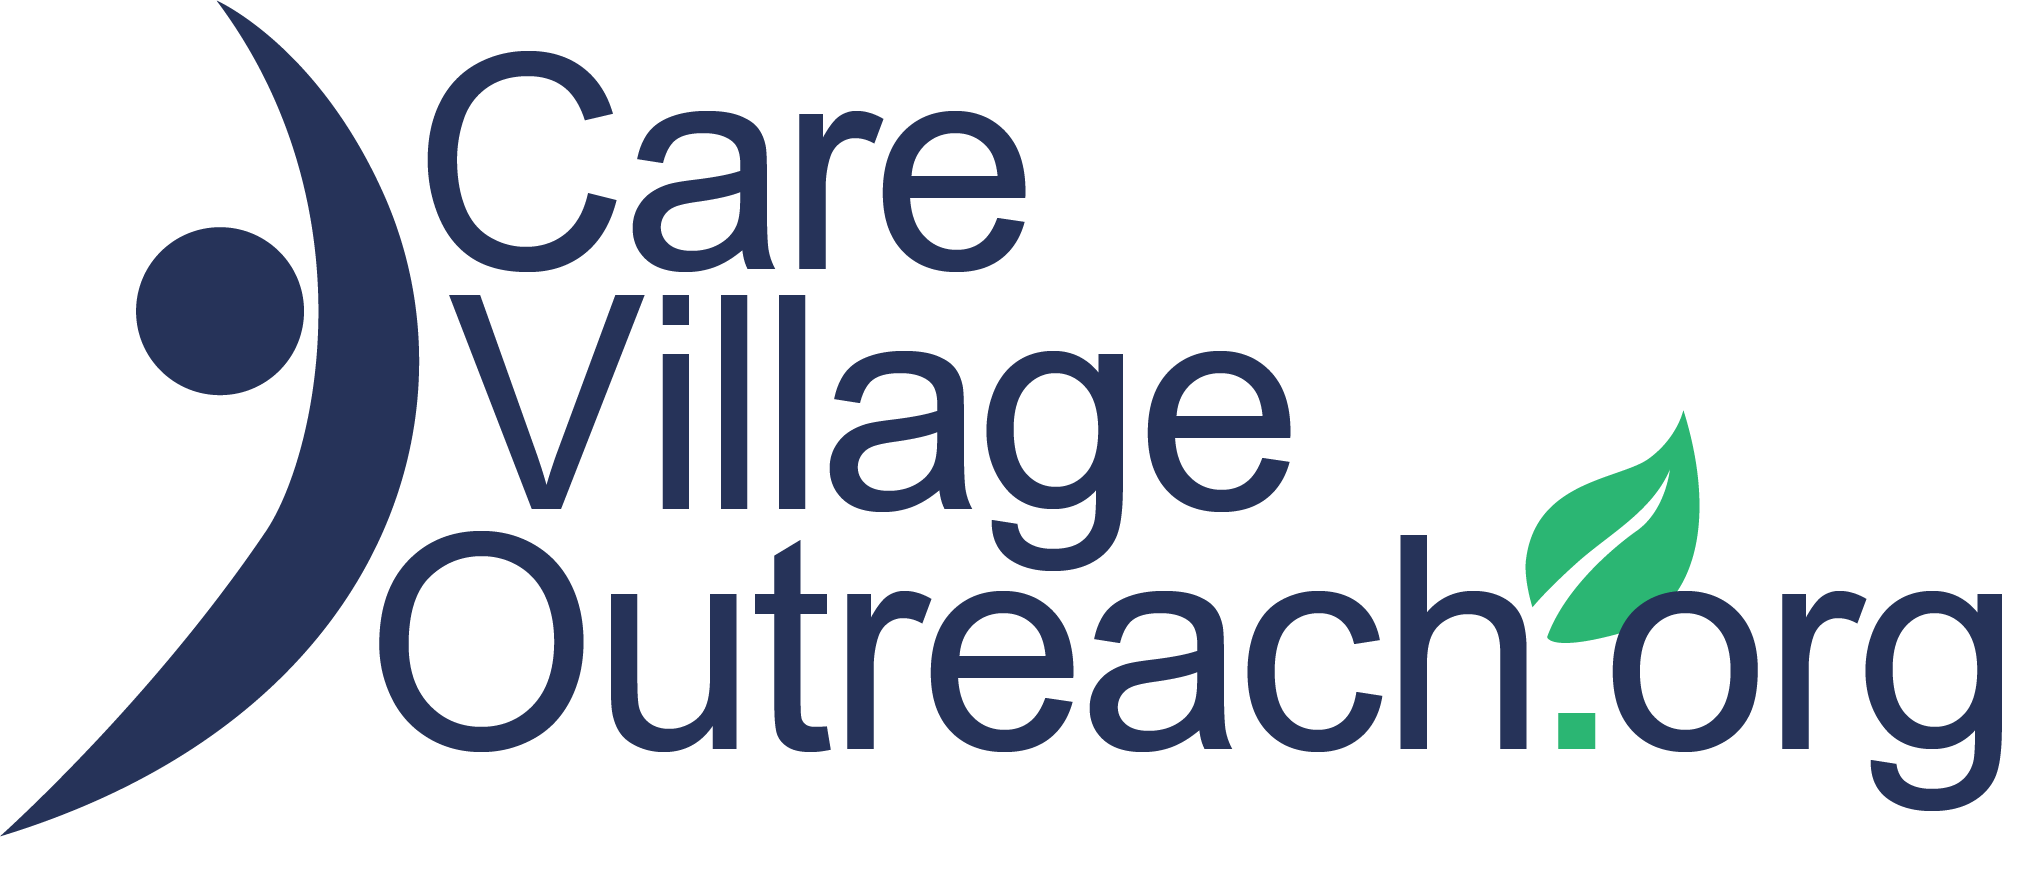 Care Village Outreach